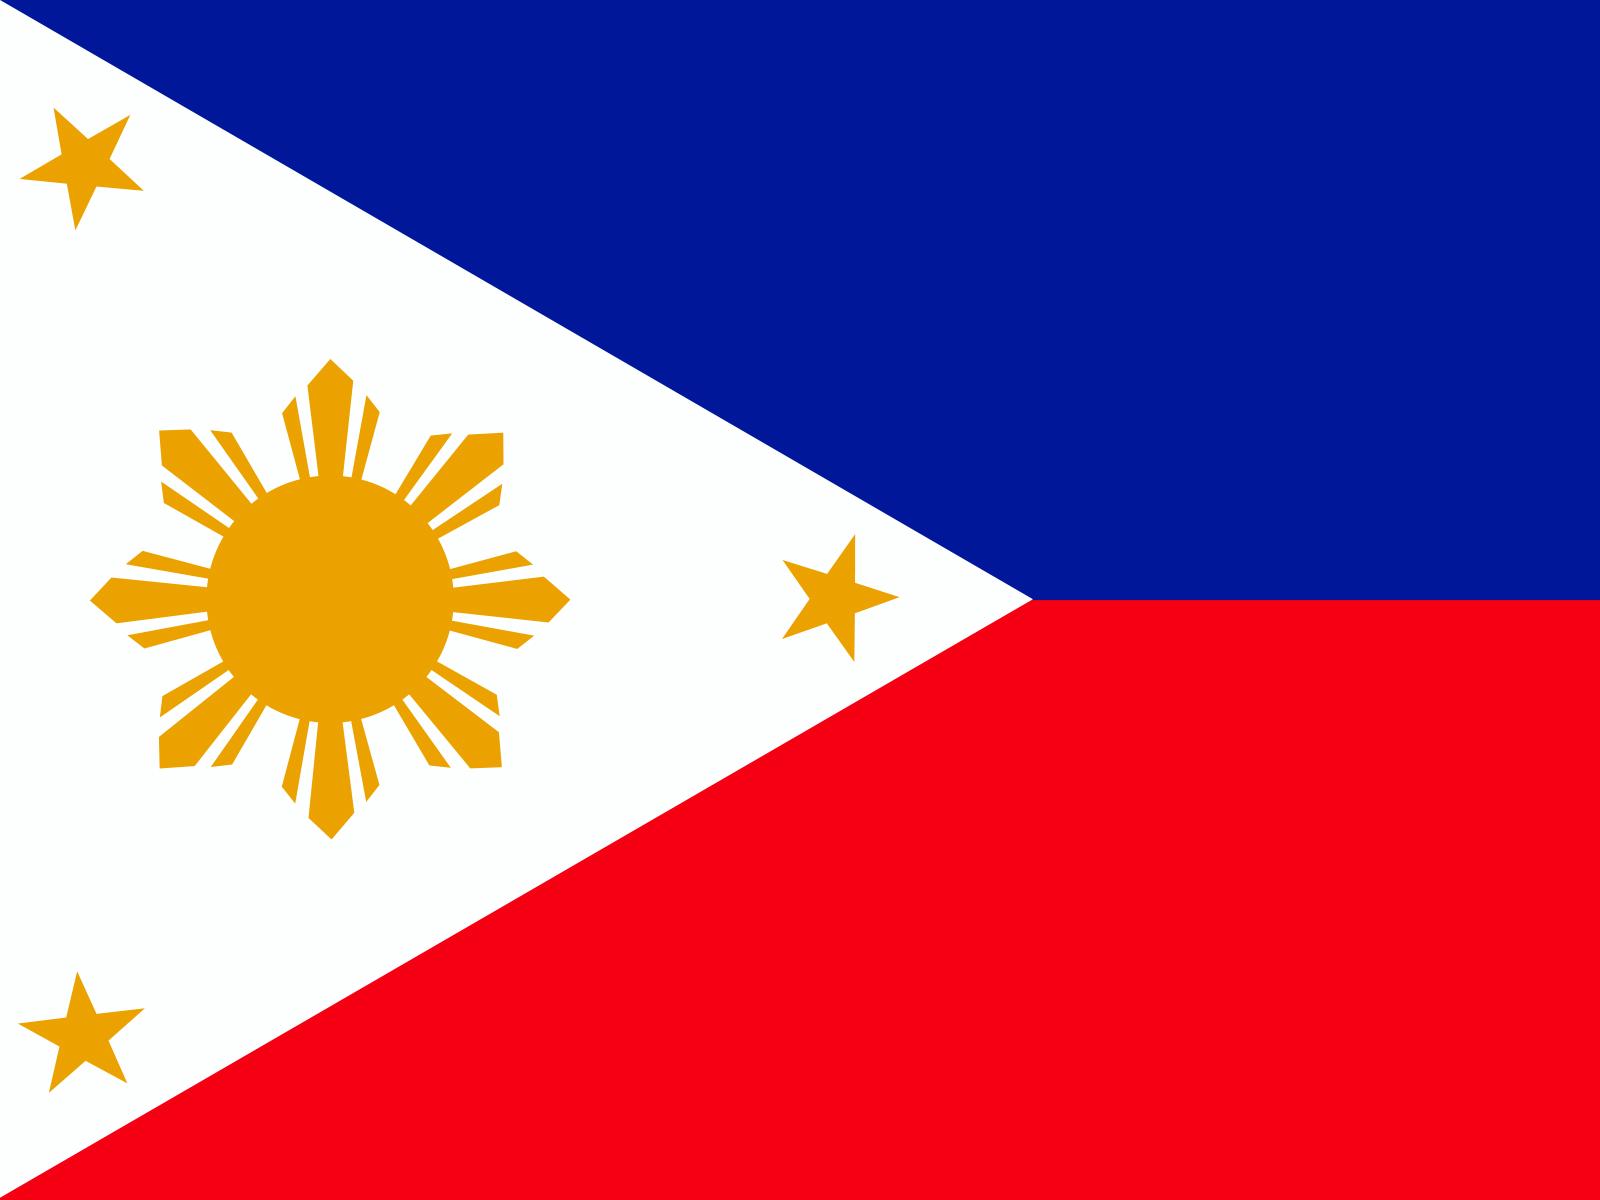 Philippines Flag Backgrounds - Blue, Flag, Red, White ... - photo#45